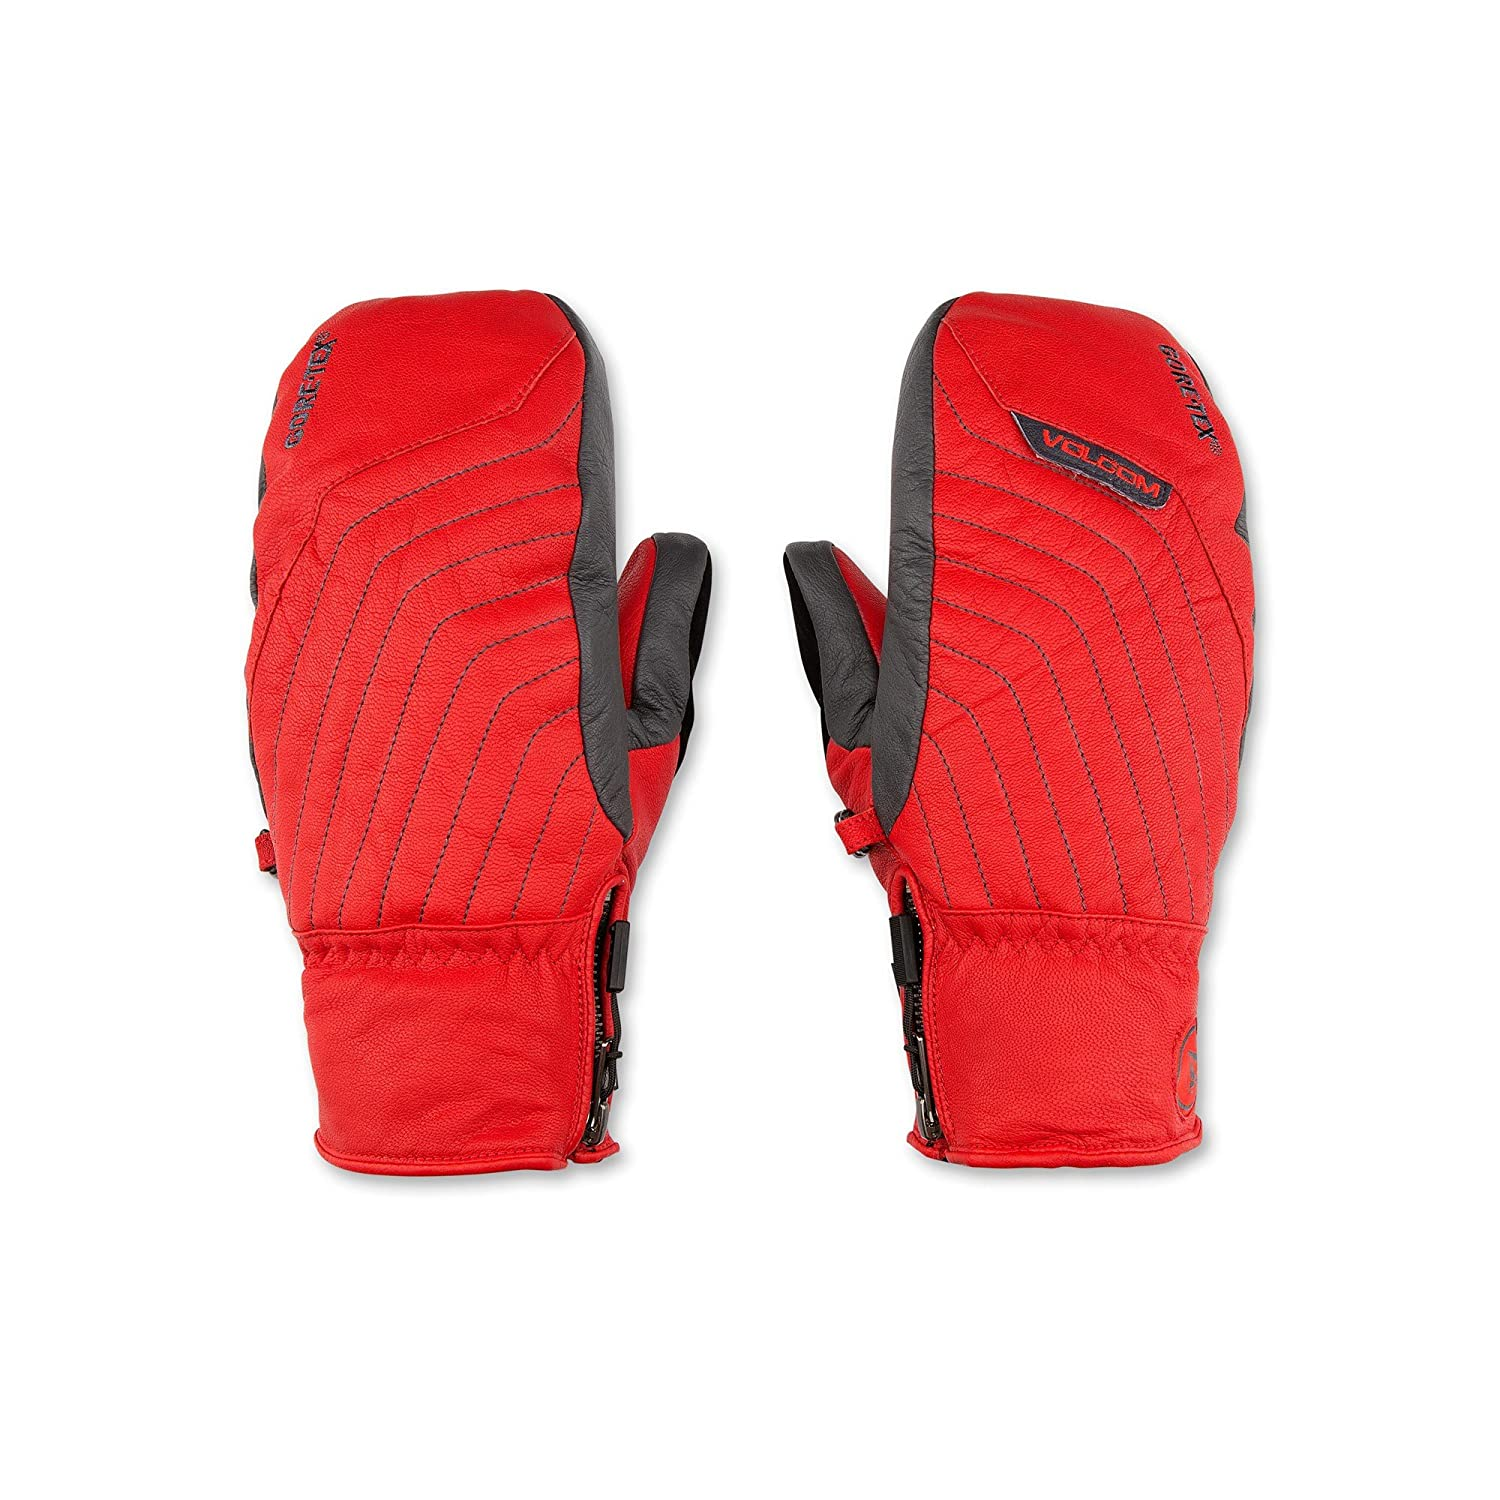 Volcom SFD POWDER MITT Winter 2016 günstig